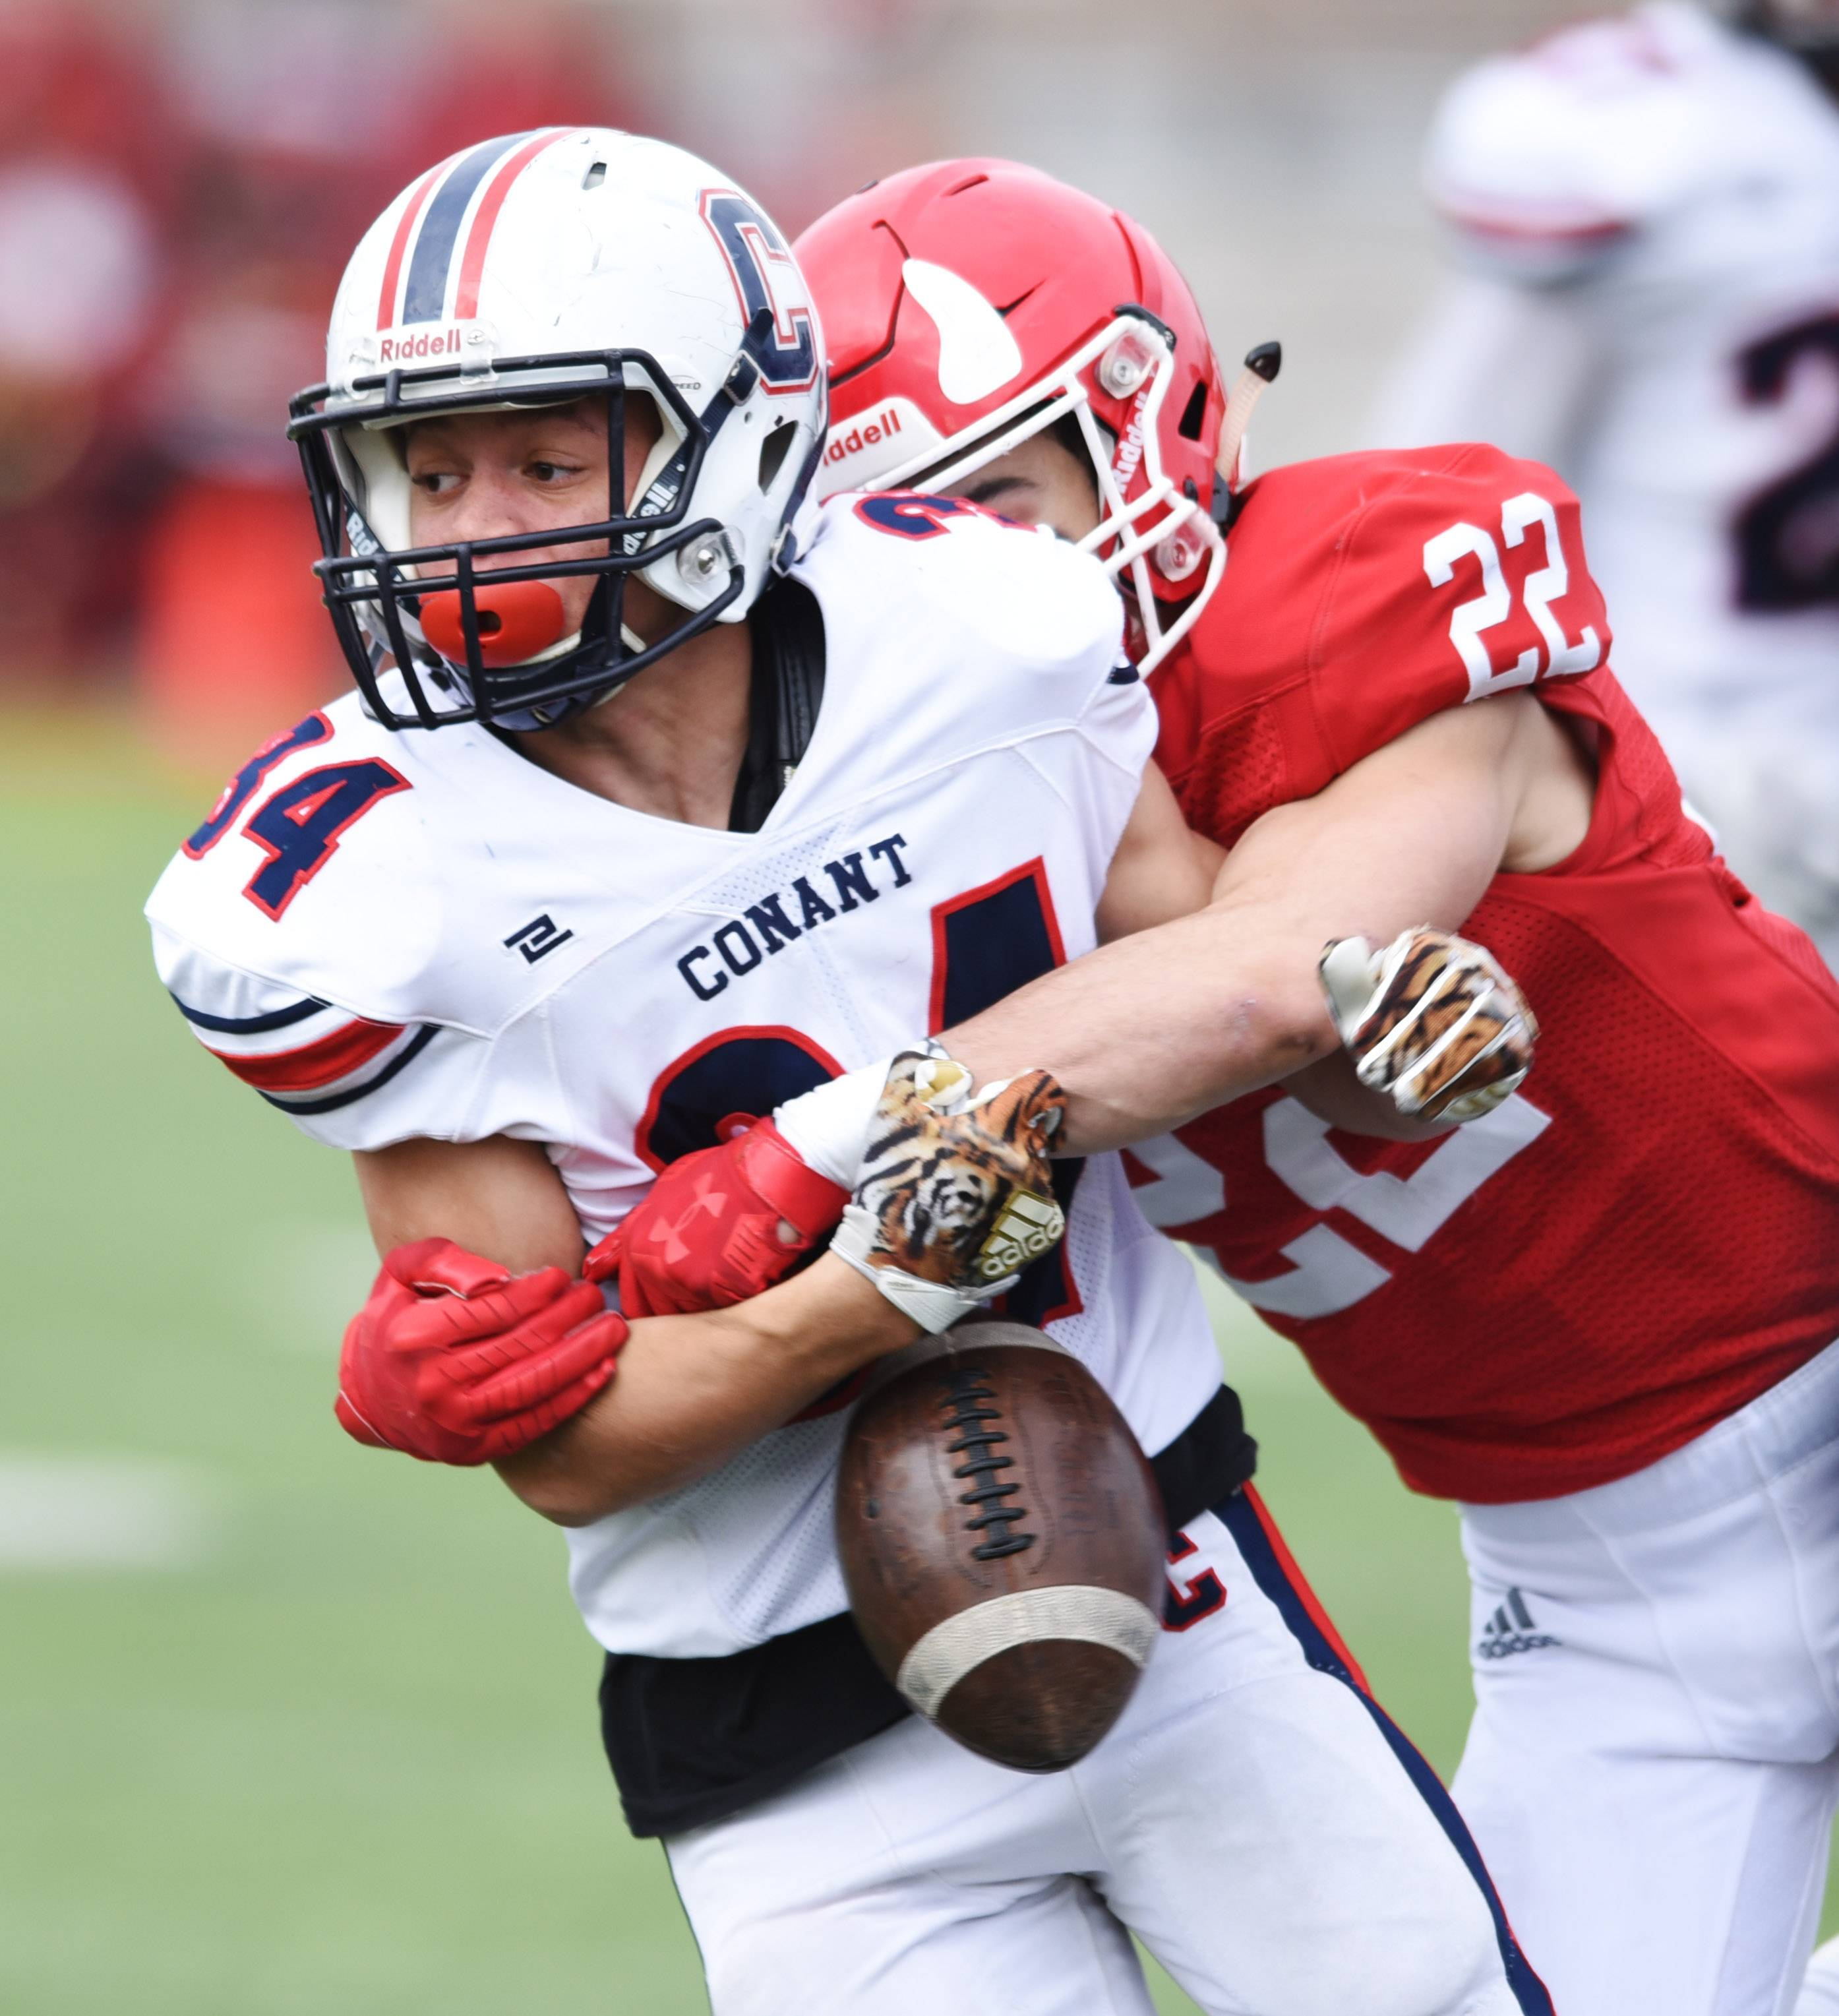 The ball pops loose from the grasp of Conant's Bradley Spates as he is tackled by Hinsdale Central's Jack McCarty, but the fumble goes out of bounds and the Cougars retain possession during Saturday's Class 8A playoff game in Hinsdale.